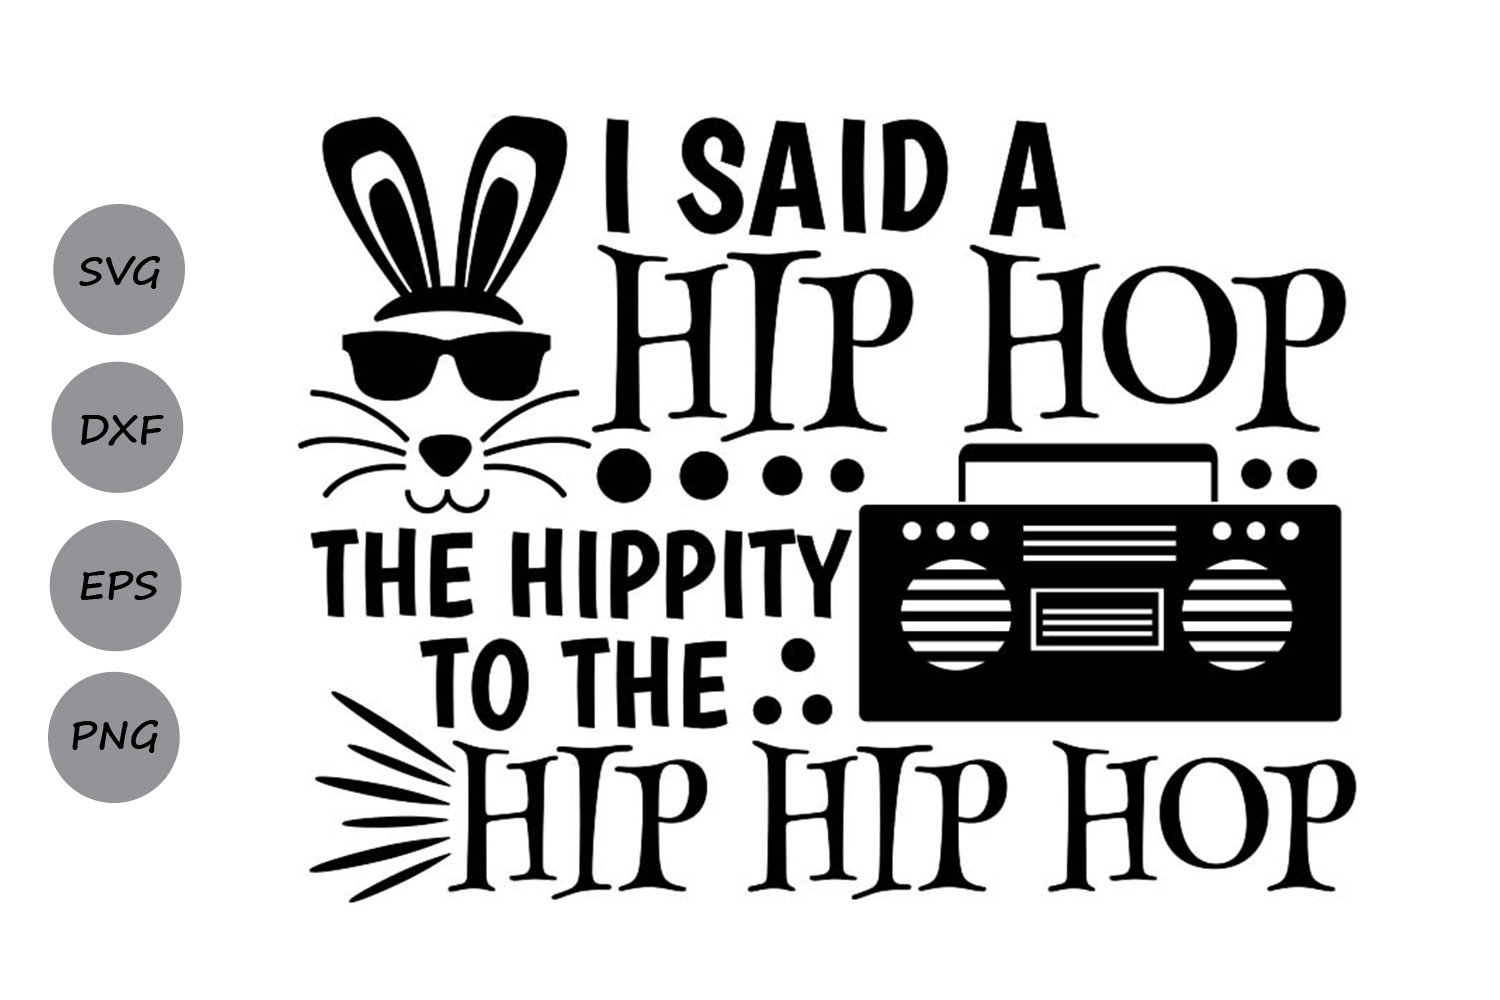 Download Free I Said A Hip Hop The Hippity Svg Graphic By Cosmosfineart for Cricut Explore, Silhouette and other cutting machines.